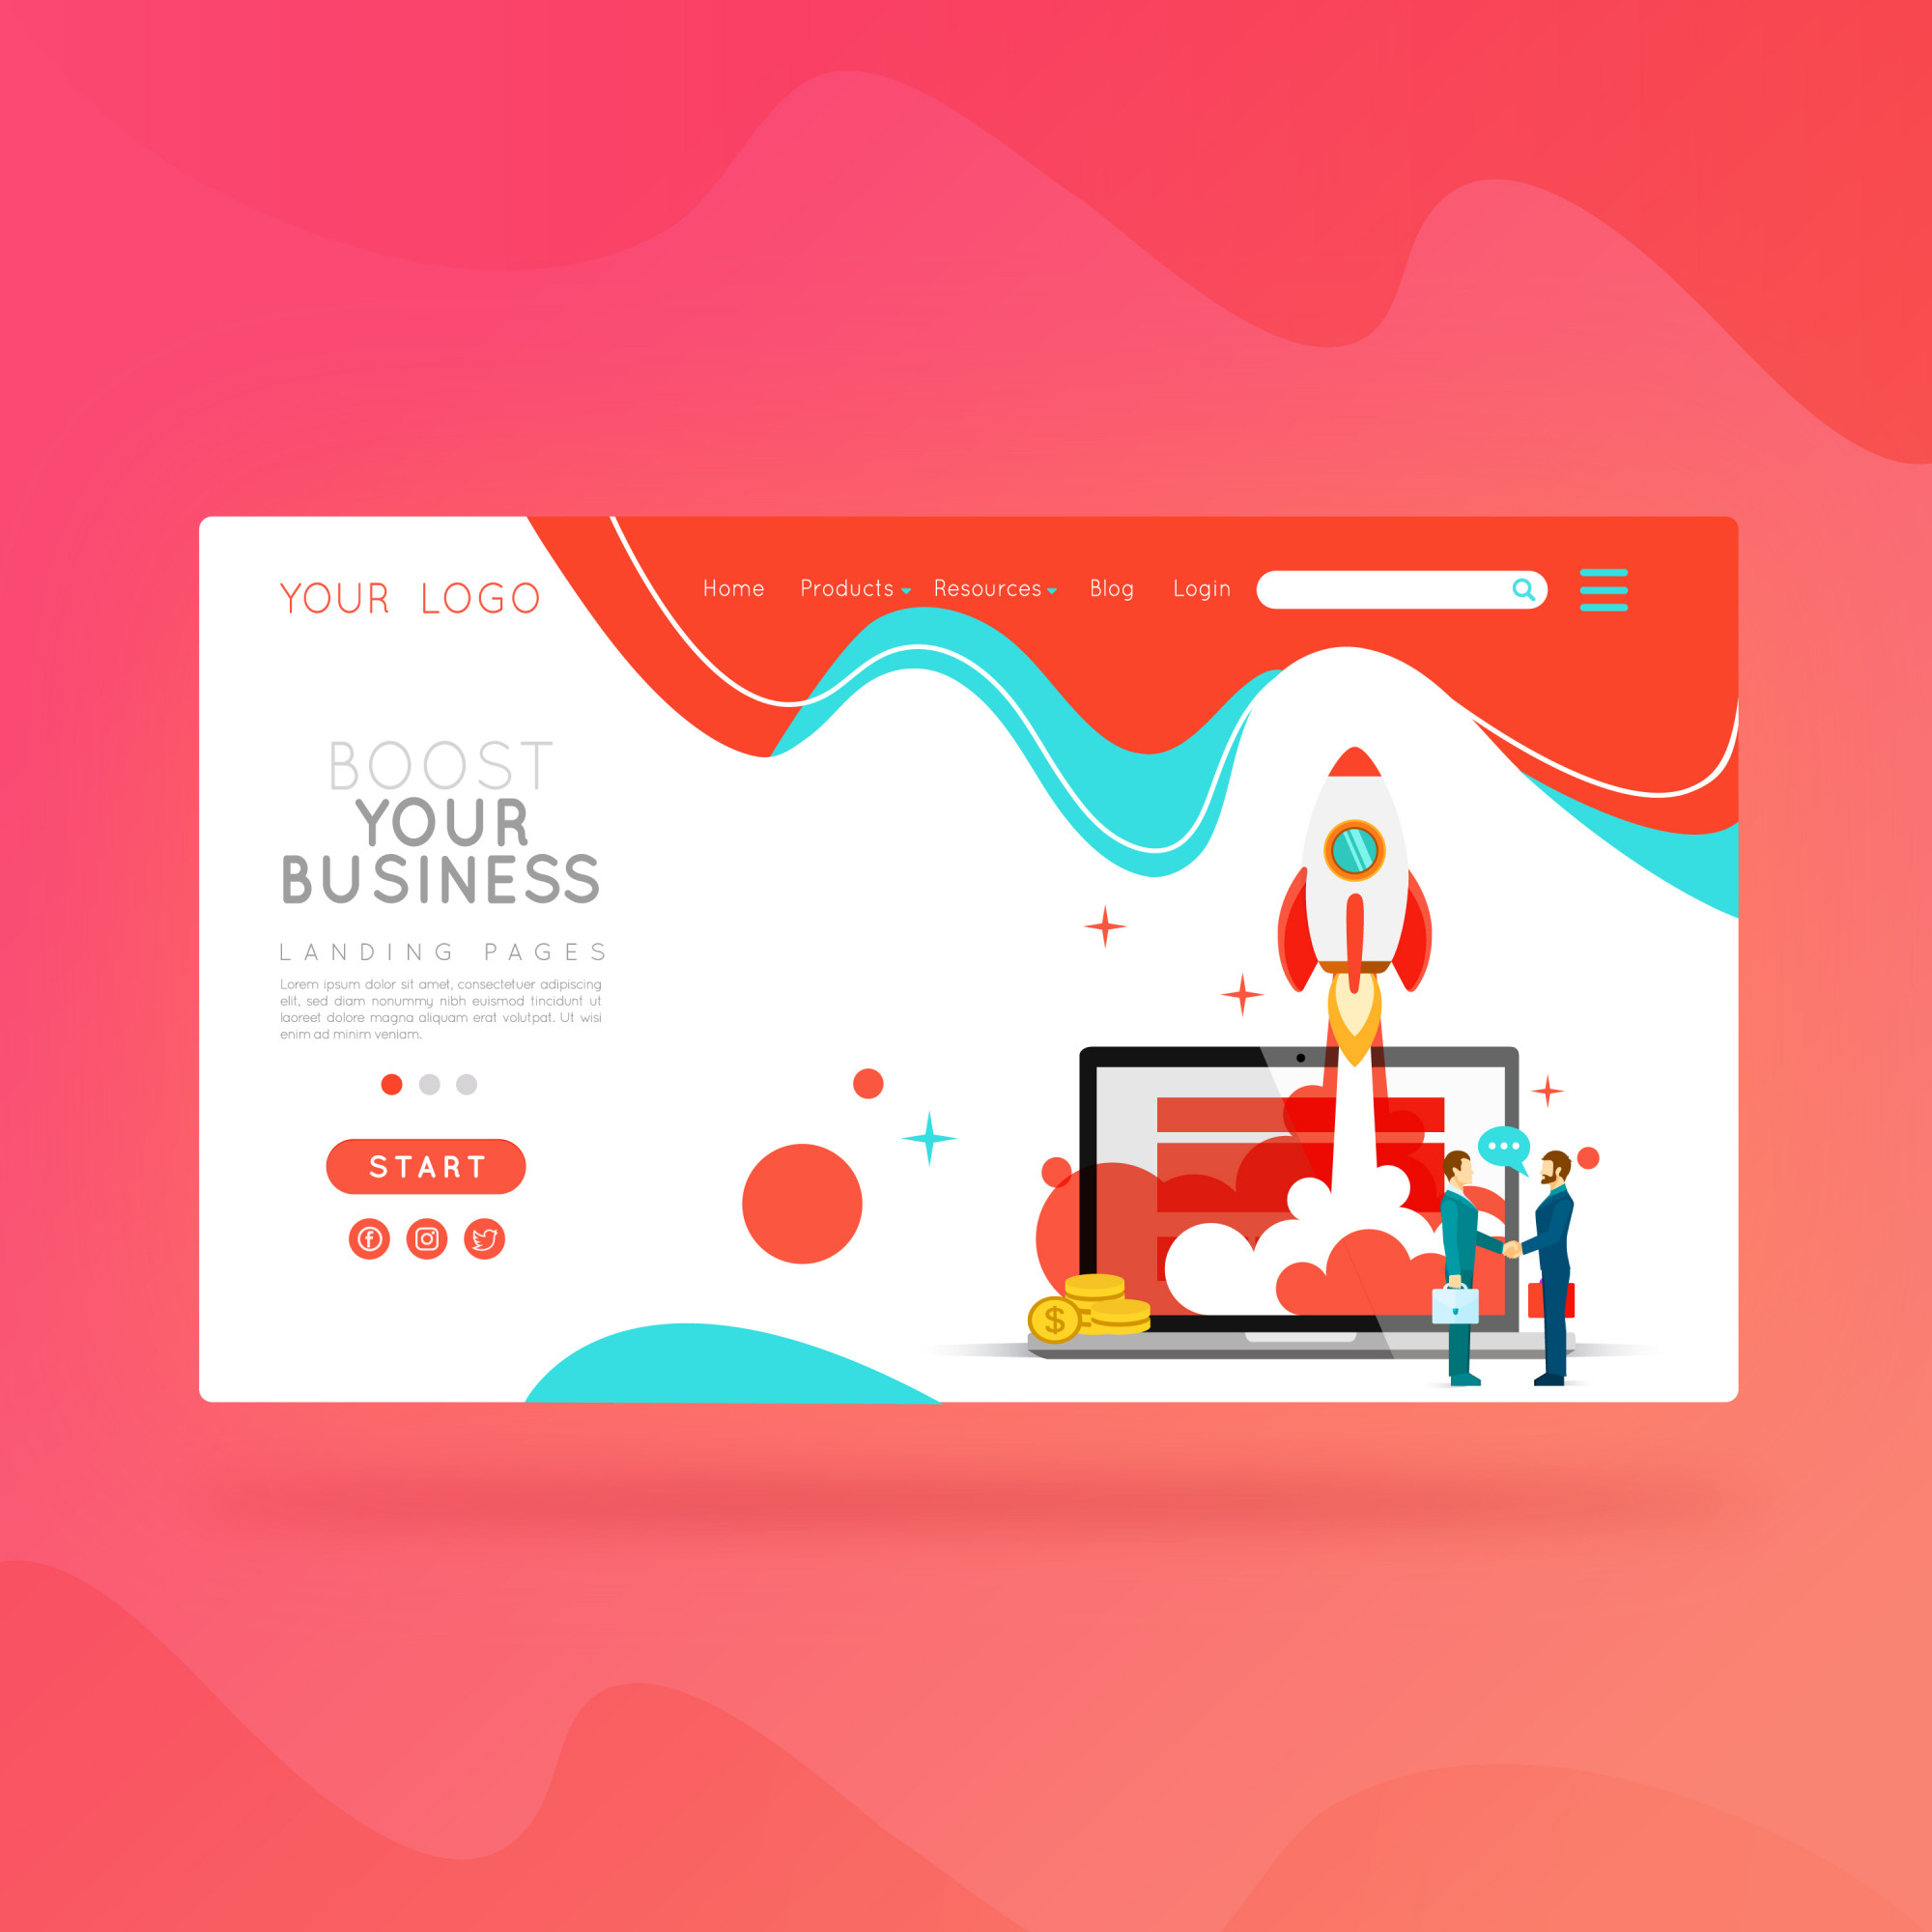 Landing page boost your business